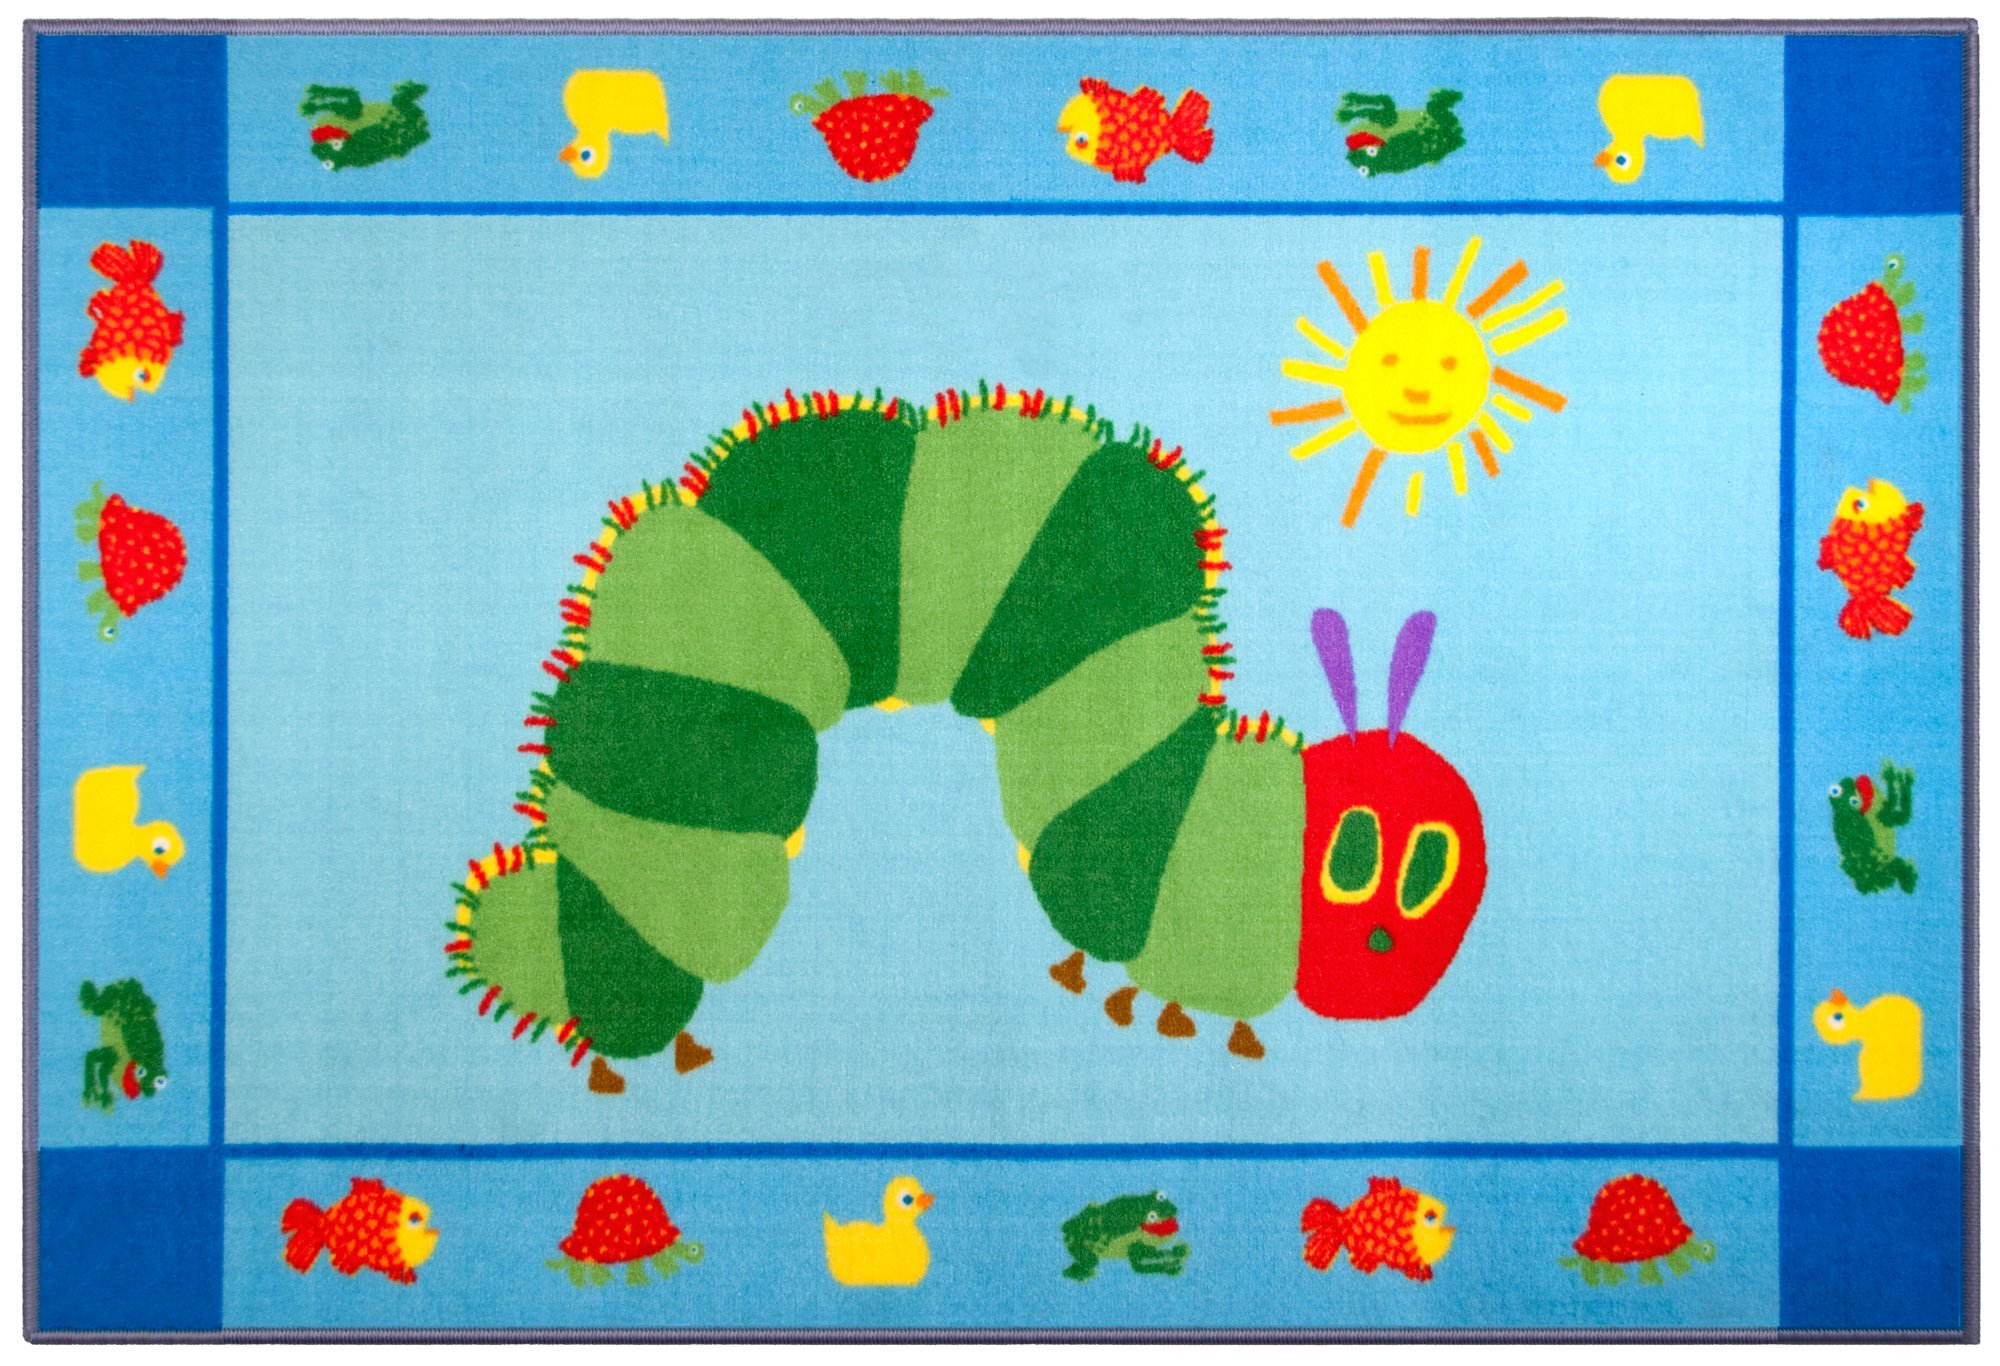 Play Rug, Wildkin Children's 39 x 58 Inch Rug, Durable, Vibrant Colors That Will Last, Perfect for Nurseries, Playrooms, and Classrooms, Ages 3+ – The Very Hungry Caterpillar